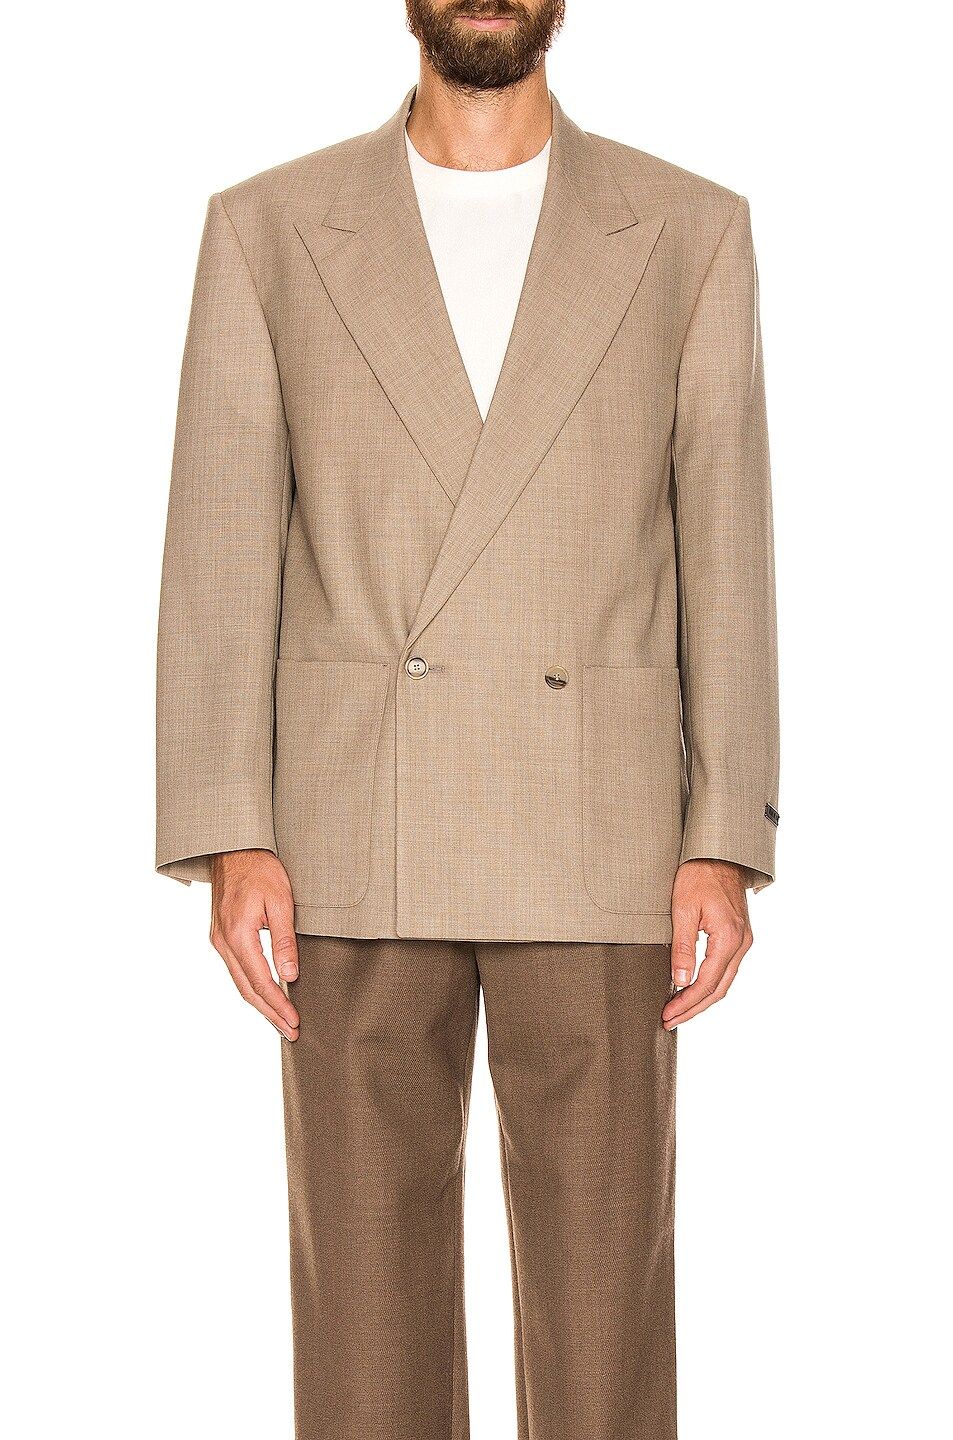 Fear of God The Suit Jacket